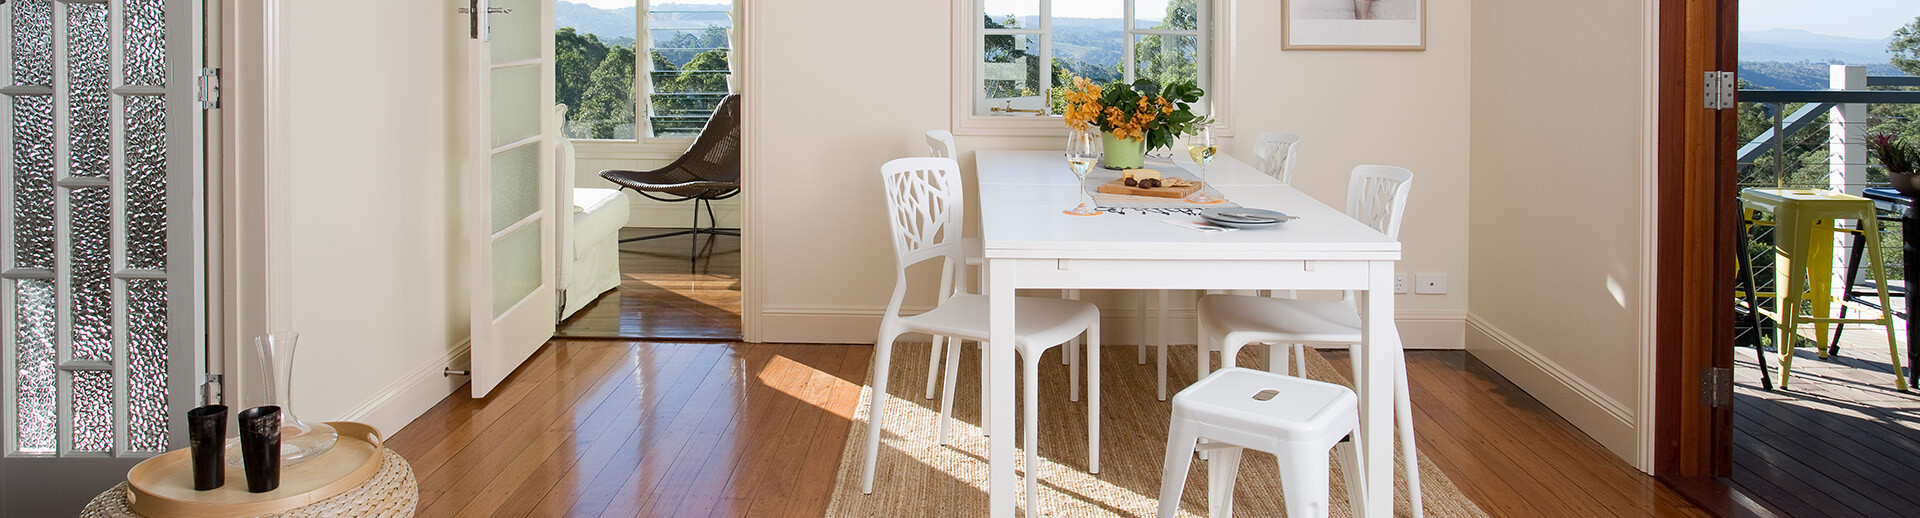 sunroom-dining-room-deck-and-view-towards-mt-mee